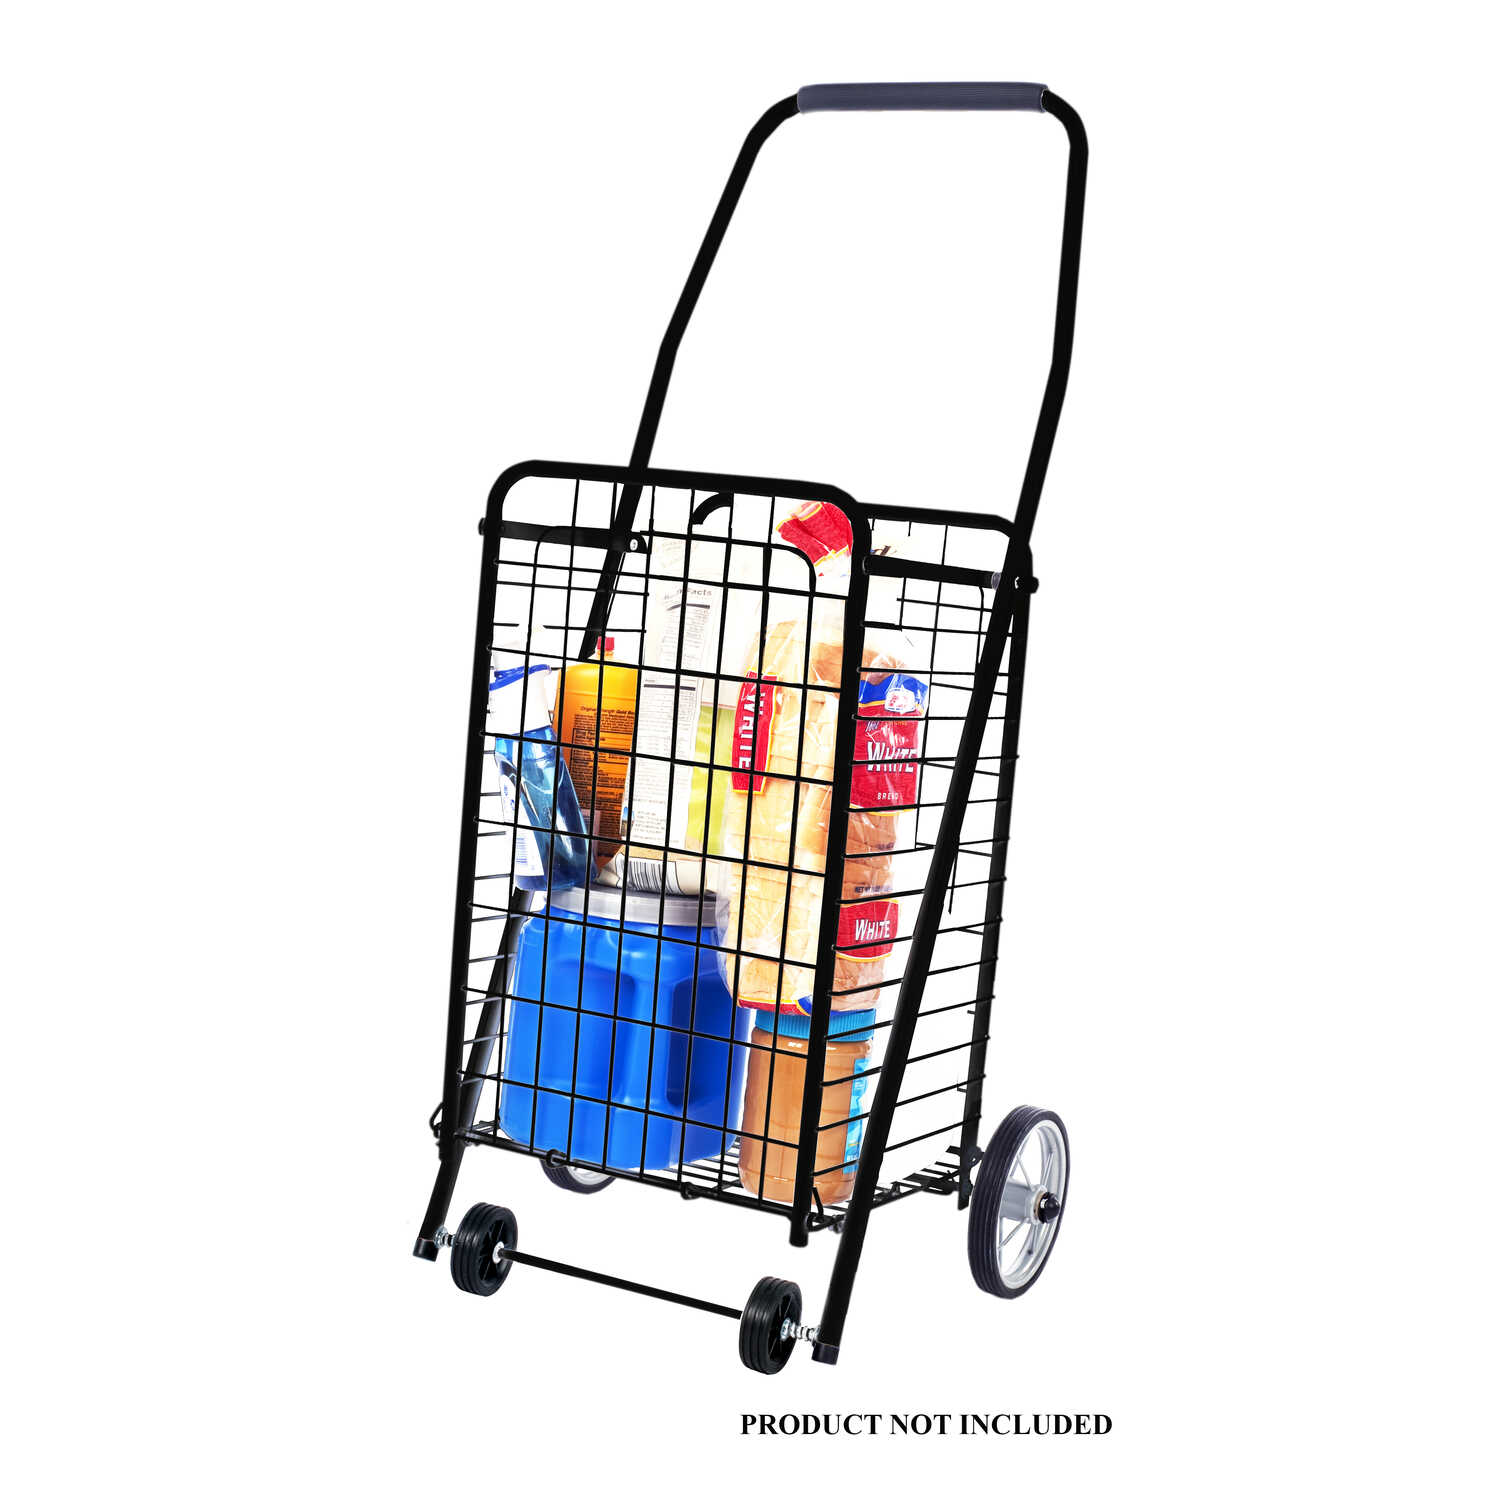 Apex  37 in. H x 12-1/2 in. W x 10-1/2 in. L Collapsible Shopping Cart  Black